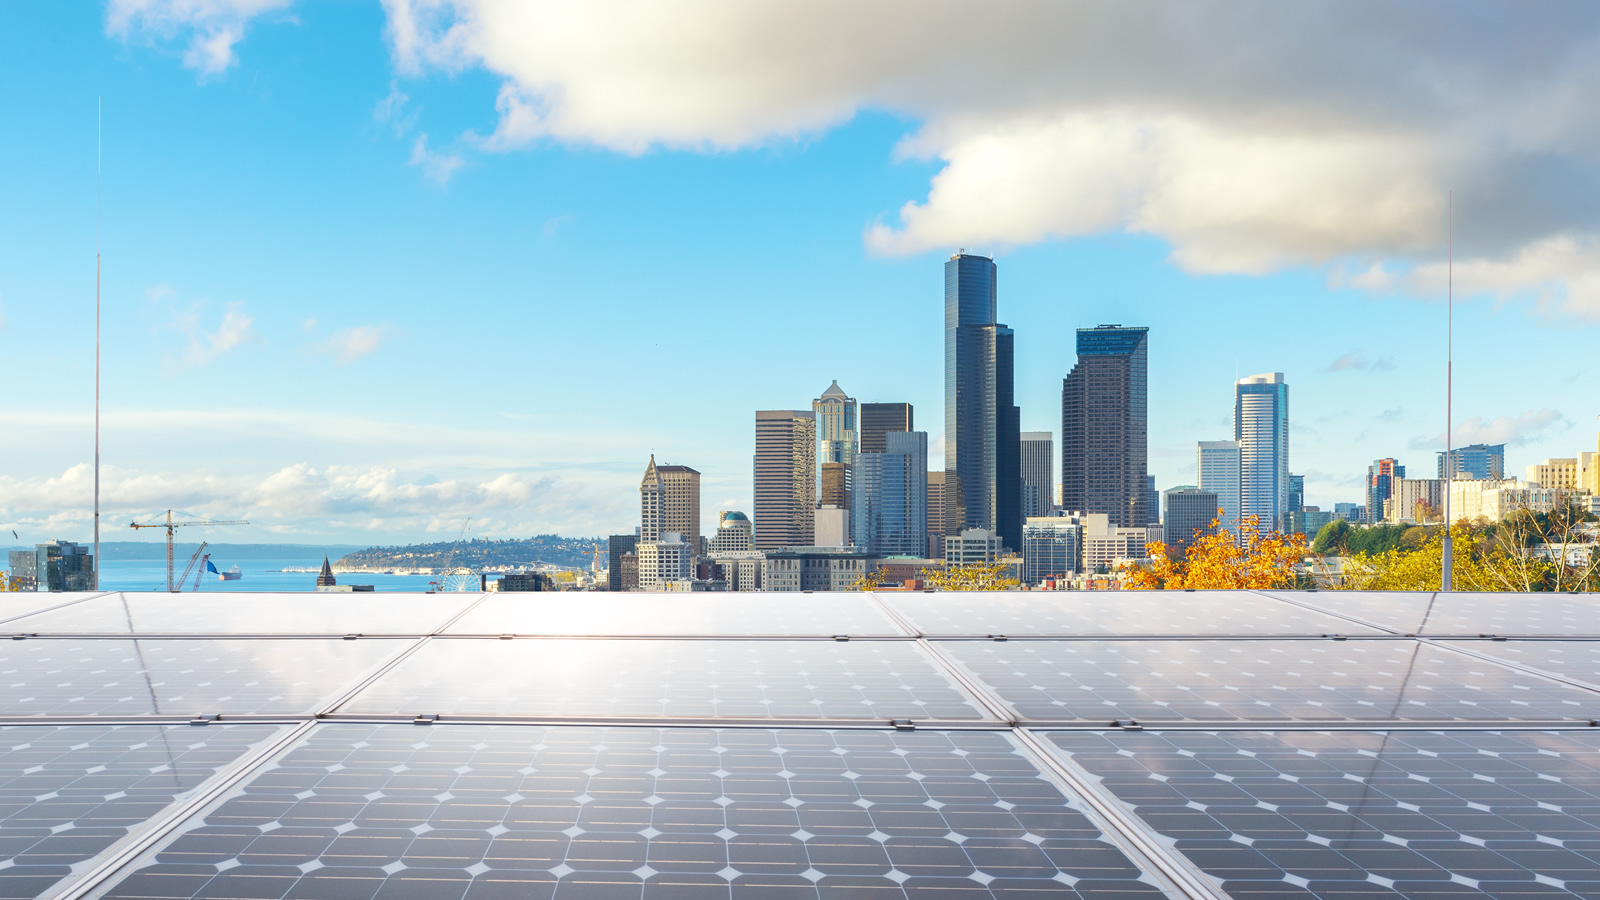 <h4>Renewables on the Rise</h4> <h5>Clean energy is sweeping across the nation and is poised for further dramatic growth in the years ahead.<br><br> <em>Los Angeles / zhu difeng via Shutterstock.com</em>